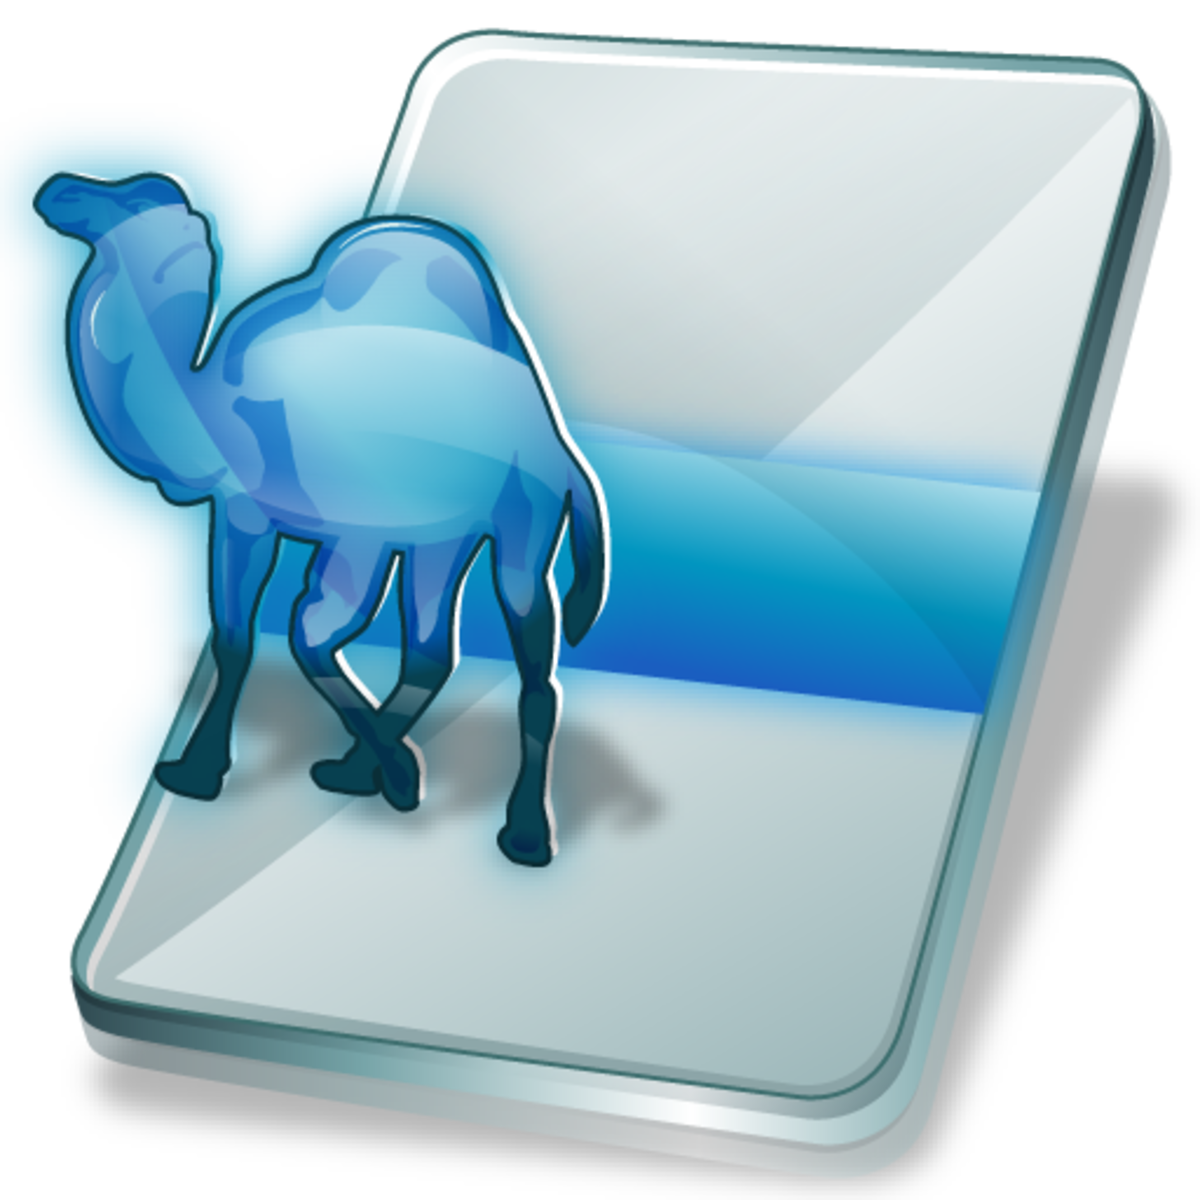 How to use Perl to identify duplicate files